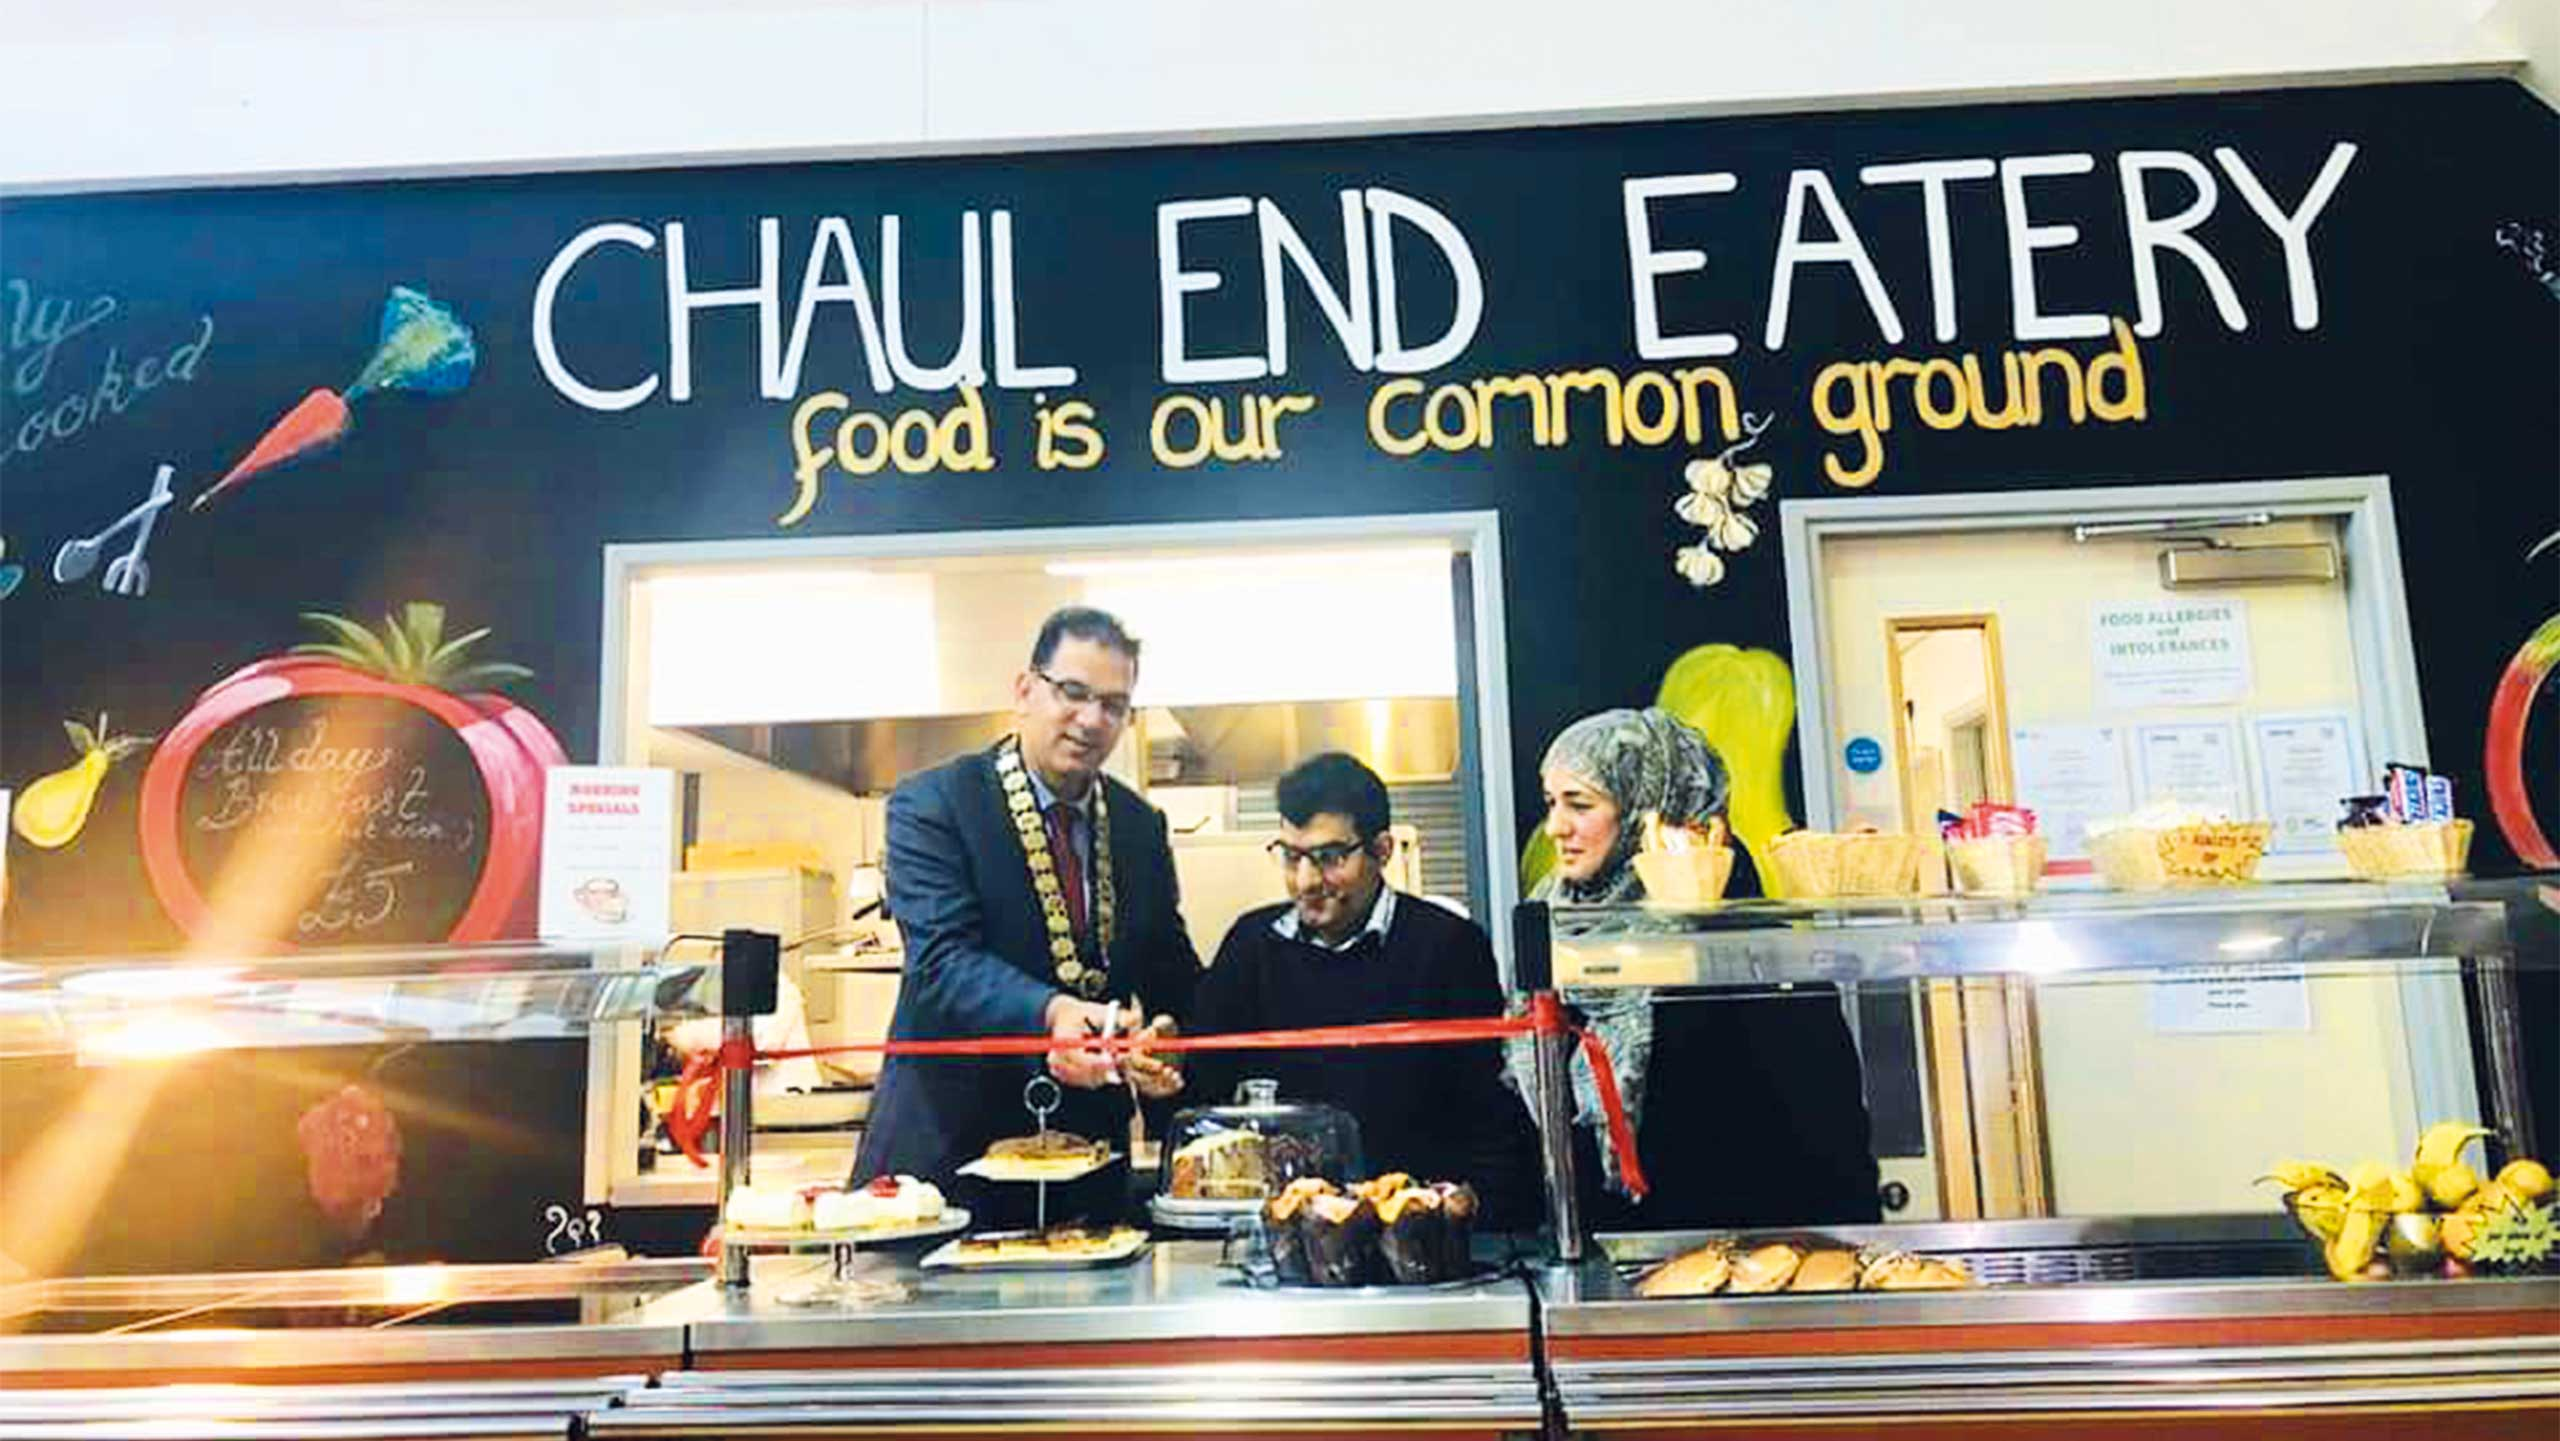 Mayor of Luton with manager of the chaul end eatery, Shigufta and one of the customers cutting the ribbon officially opening the Chaul End eatery infront of the serving table with food layed out including cakes.